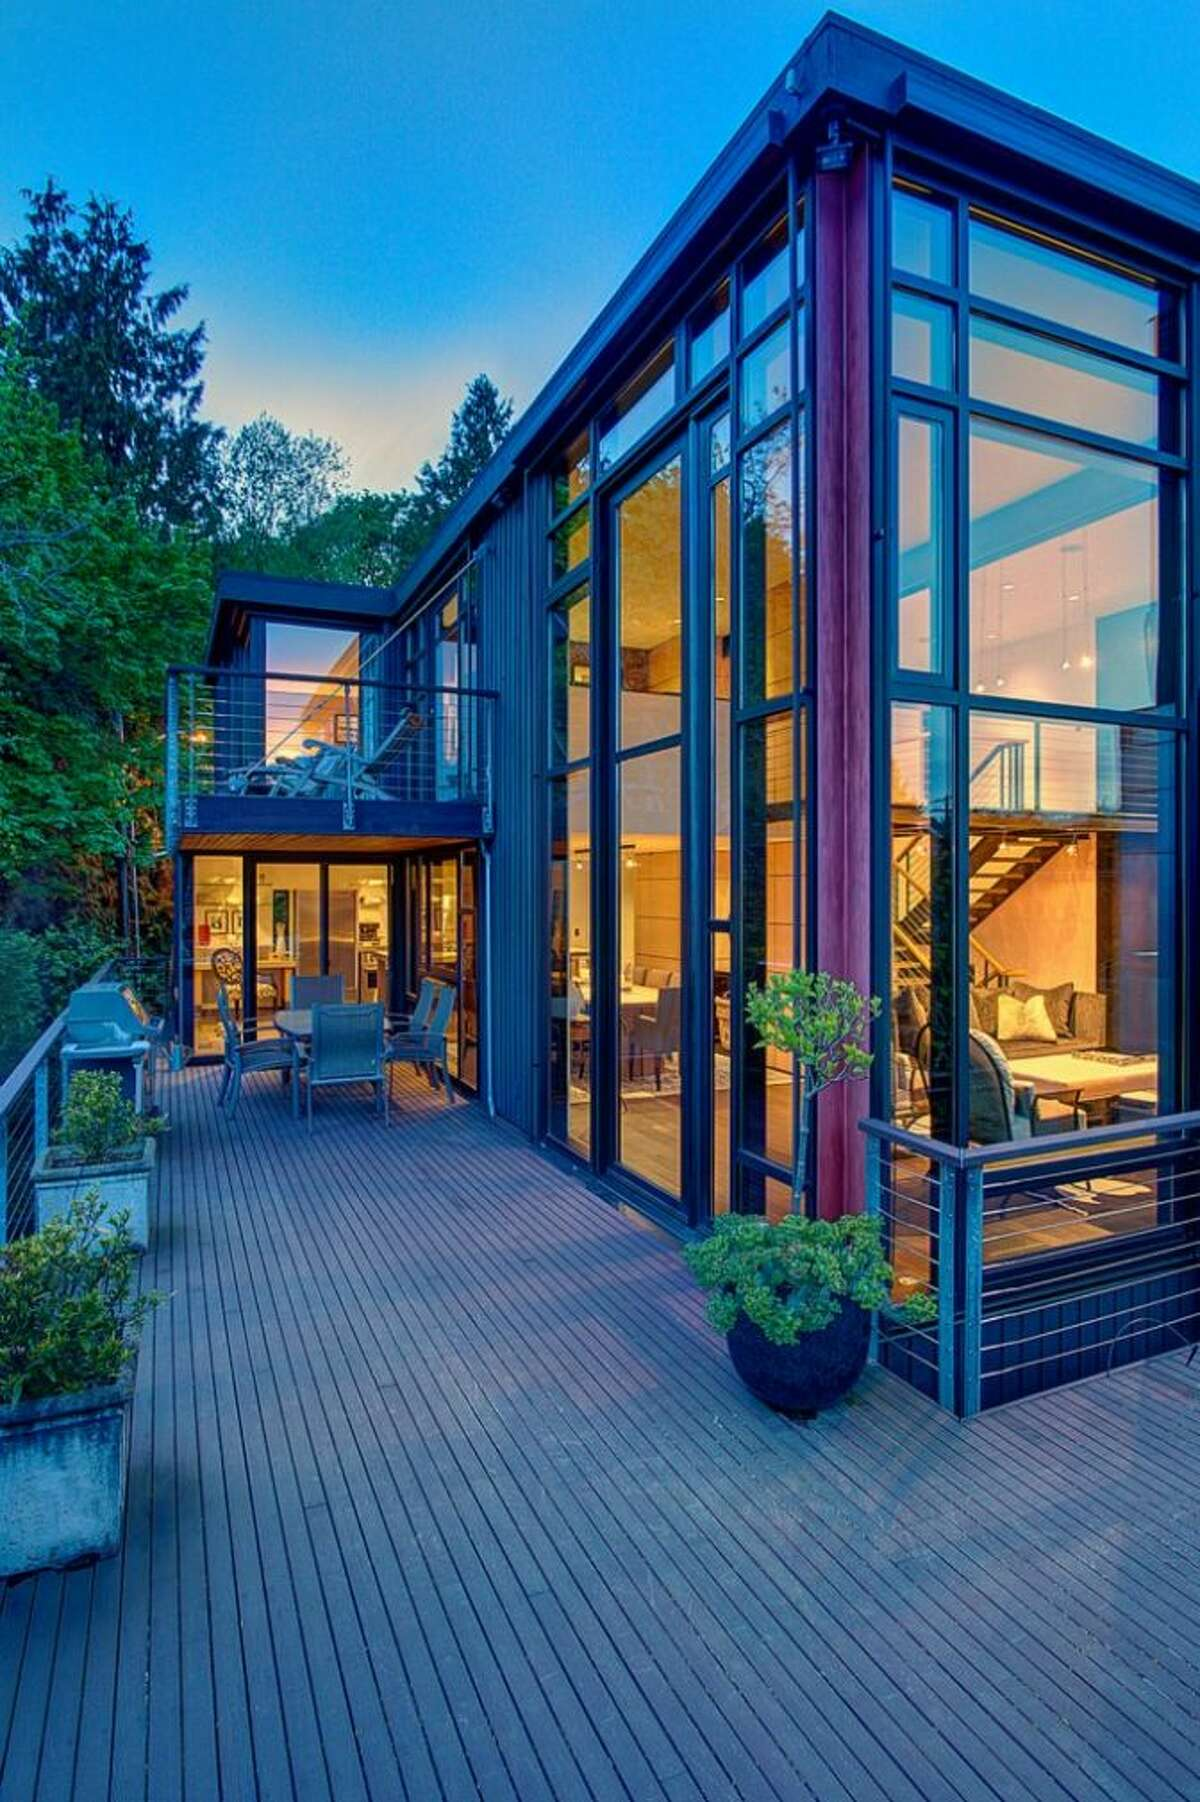 Tom Kundig is among Seattle's most celebrated active architects. Now, you could live in one of his creations, 414 34th Ave. S., in Leschi. The 3,190-square-foot house, built in 1998, has three bedrooms, 2.25 bathrooms, a two-story living room with walls of windows, steel staircases and landing, decks, patios, and views of Mount Rainier and Lake Washington on a 7,200-square-foot lot. It's listed for $1.8 million.